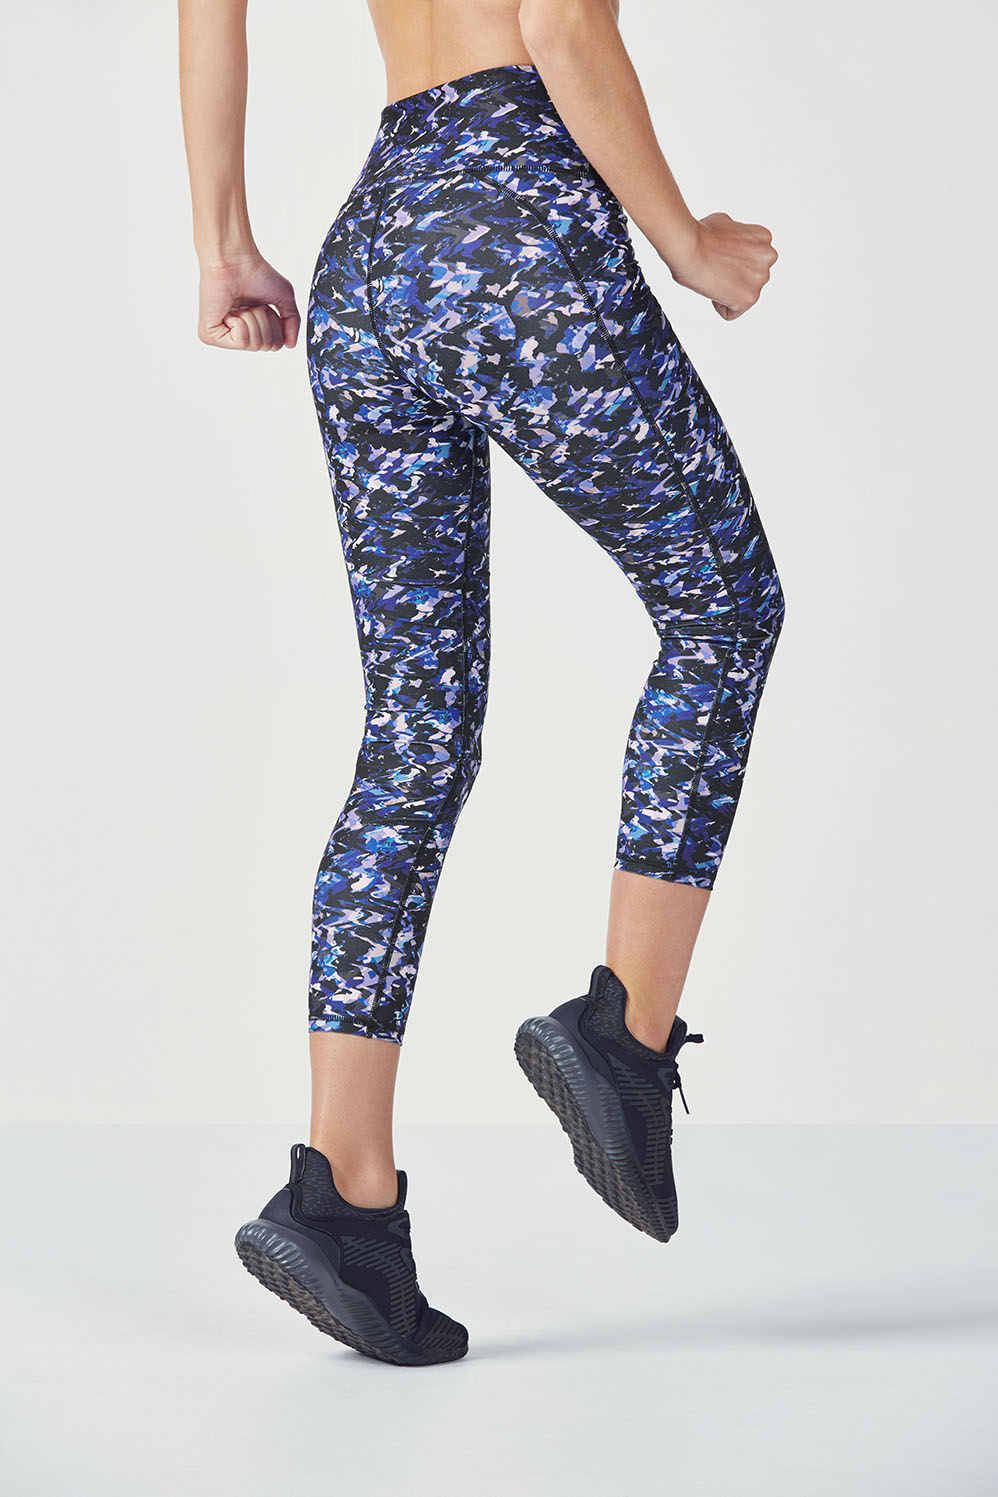 476c59b9ee24a High-Waisted Printed PowerHold® 7/8 - Bright Blue Painted Camo Print